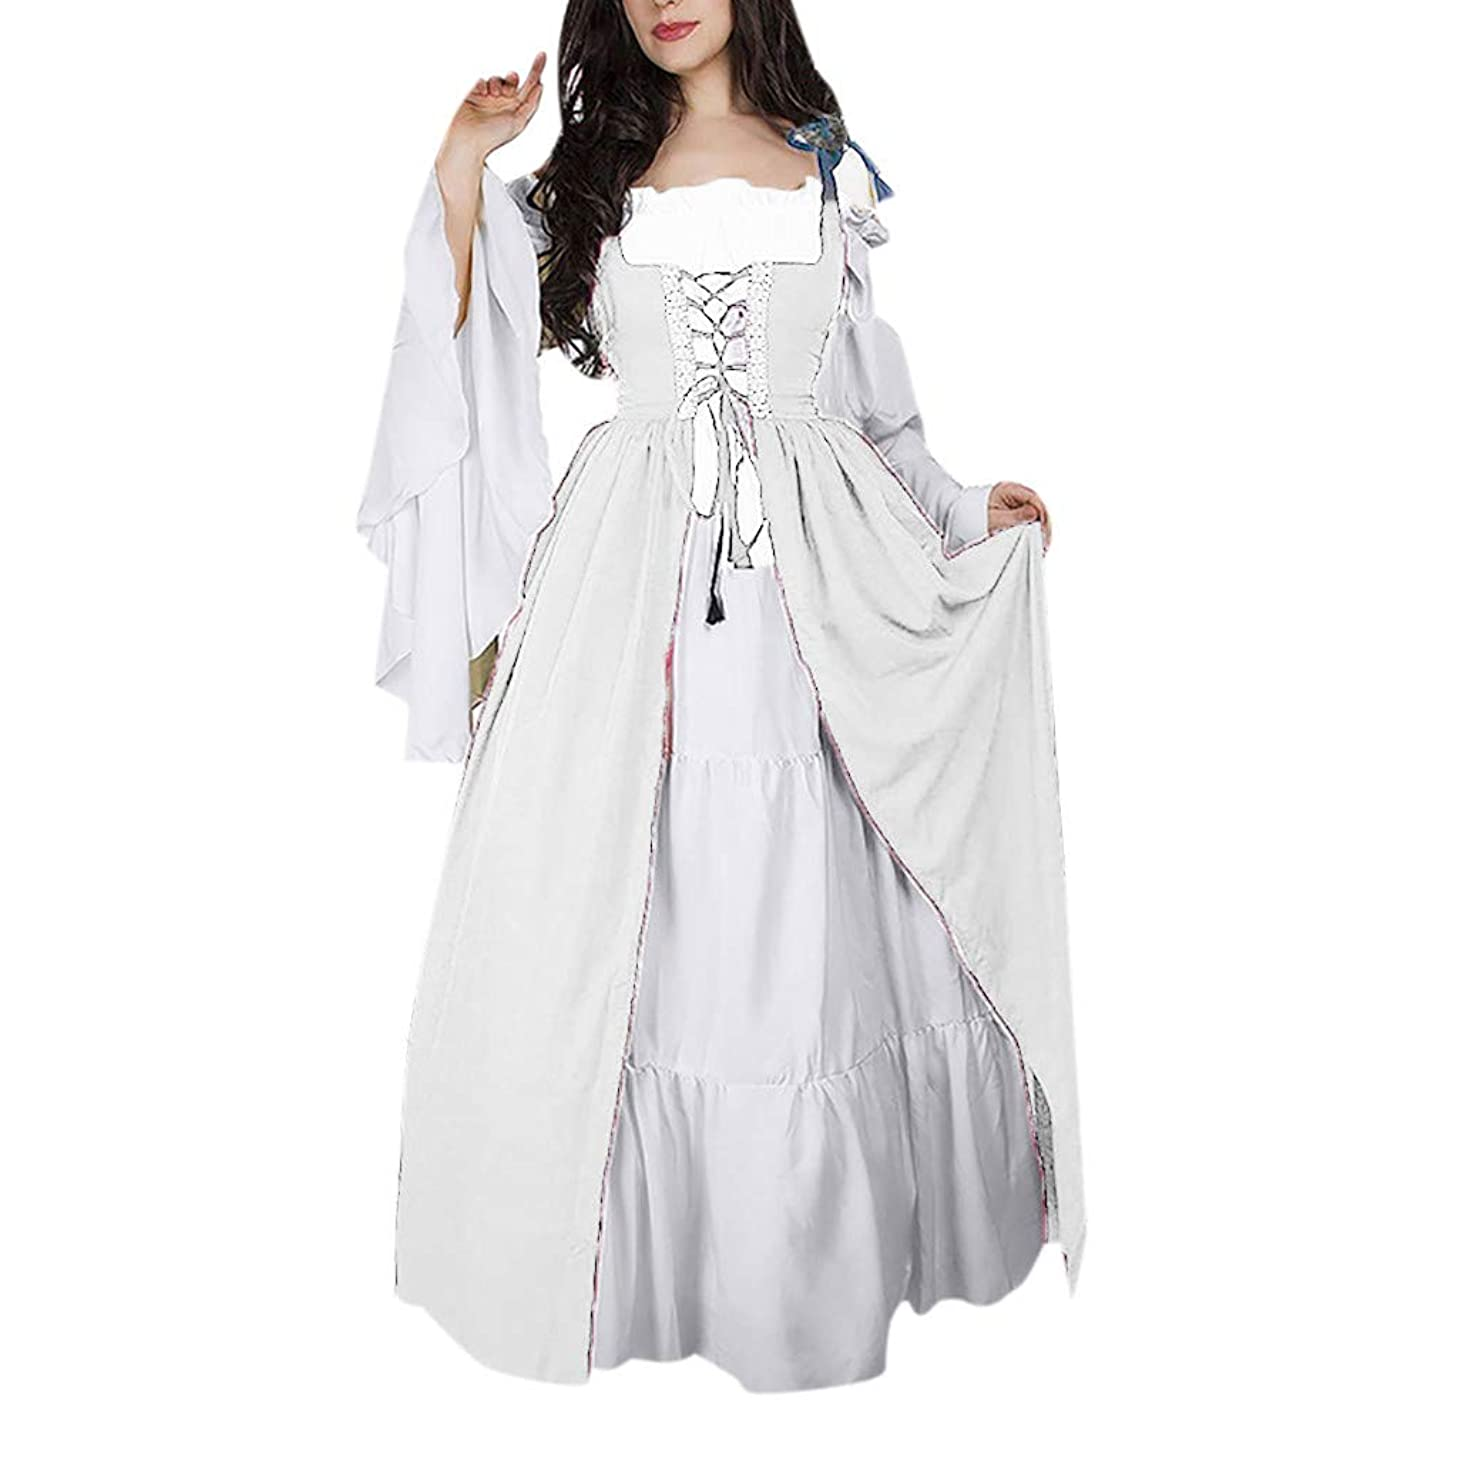 ?QueenBB? Women's Floral Lace Up Vintage Dress Plus Size Trappy Corset Dress Gothic Halloween Clubwear Lace Skirt